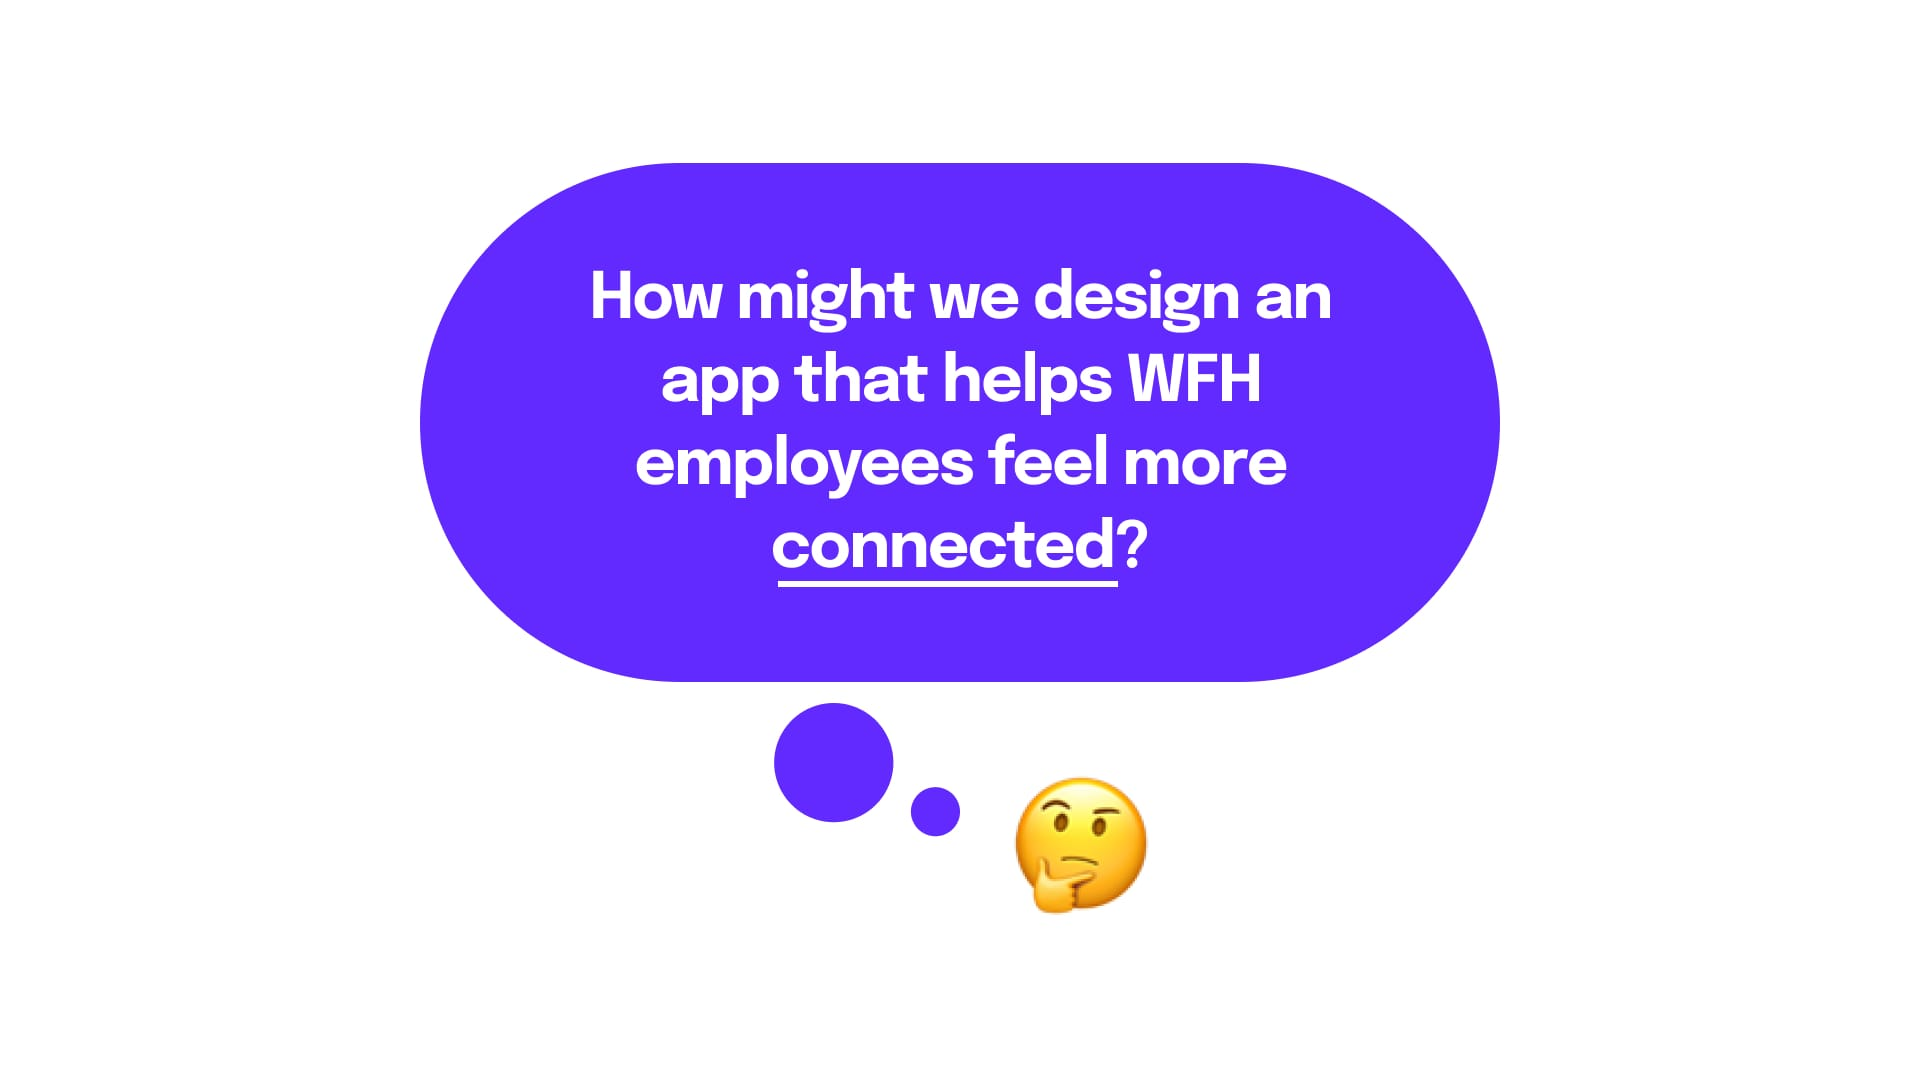 How might we design an app that helps WFH employees feel more connected?